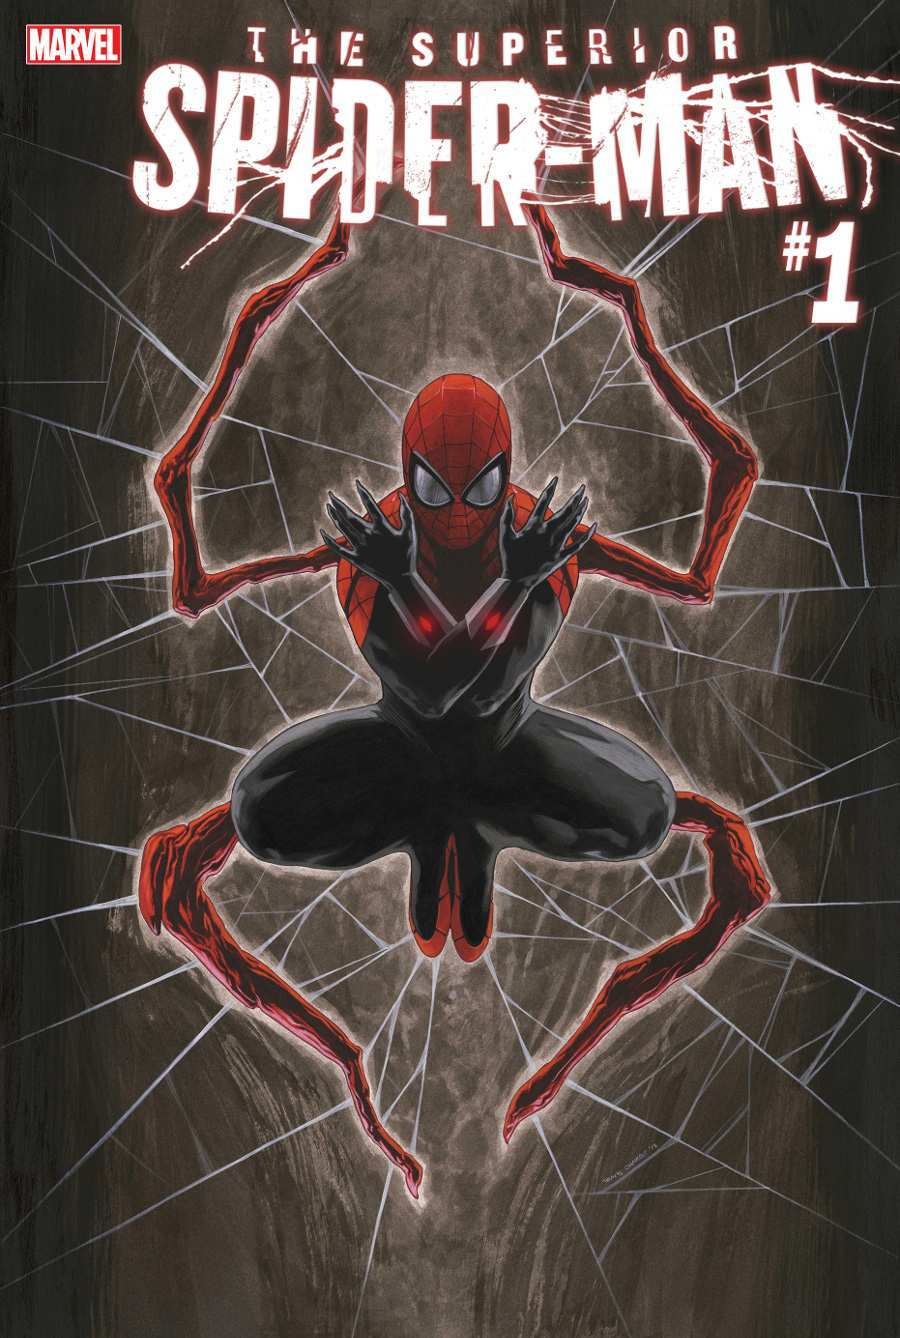 superior-spider-man-1-1132440.jpg